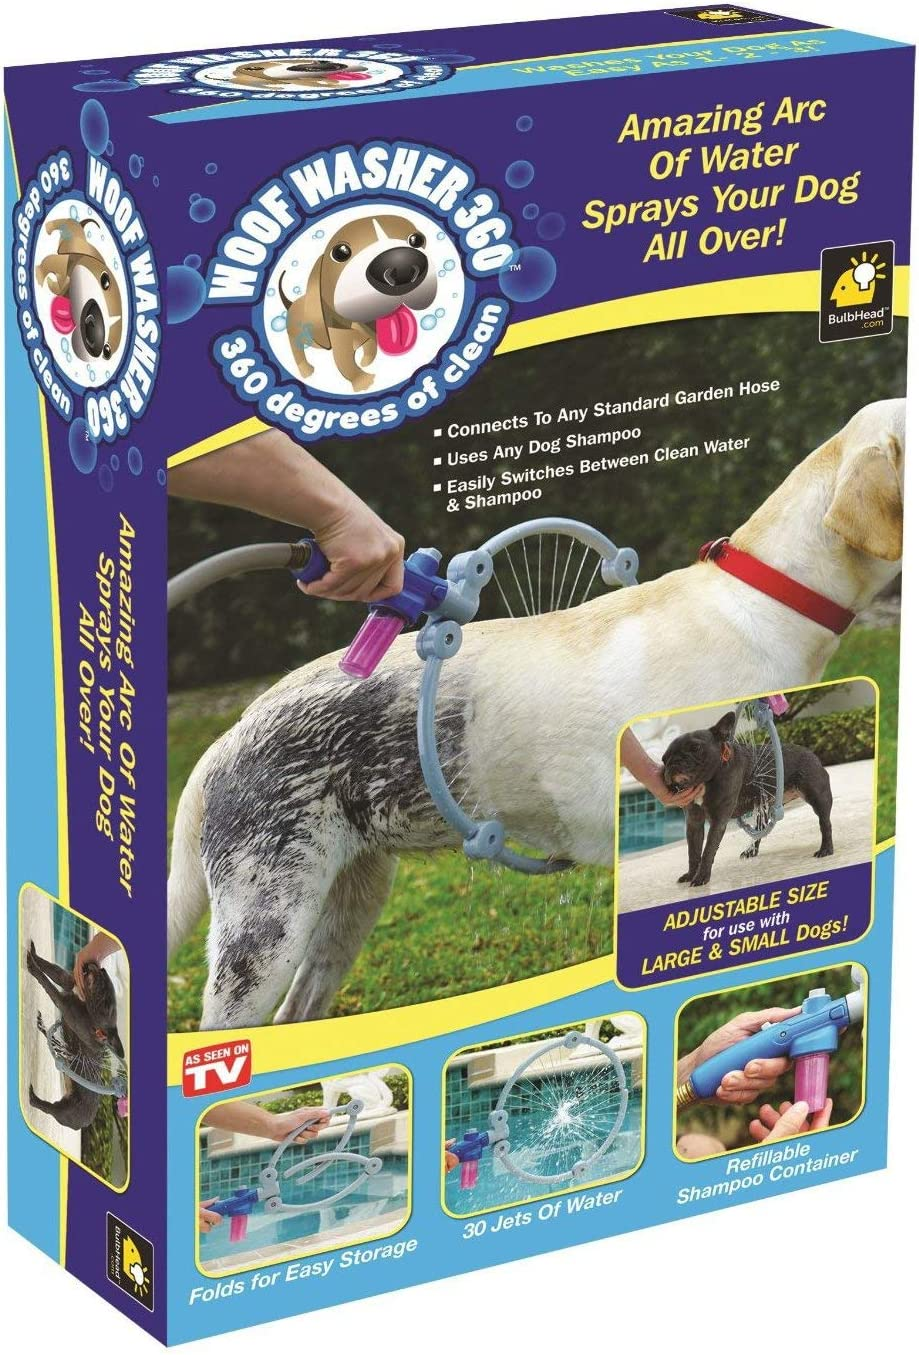 Pet Dog Cat Bathing Cleaner 360 Degree Shower Tool Kit Cleaning Woof Washer 360 By Bulb Head Perfect Dog Washing Station PT0858